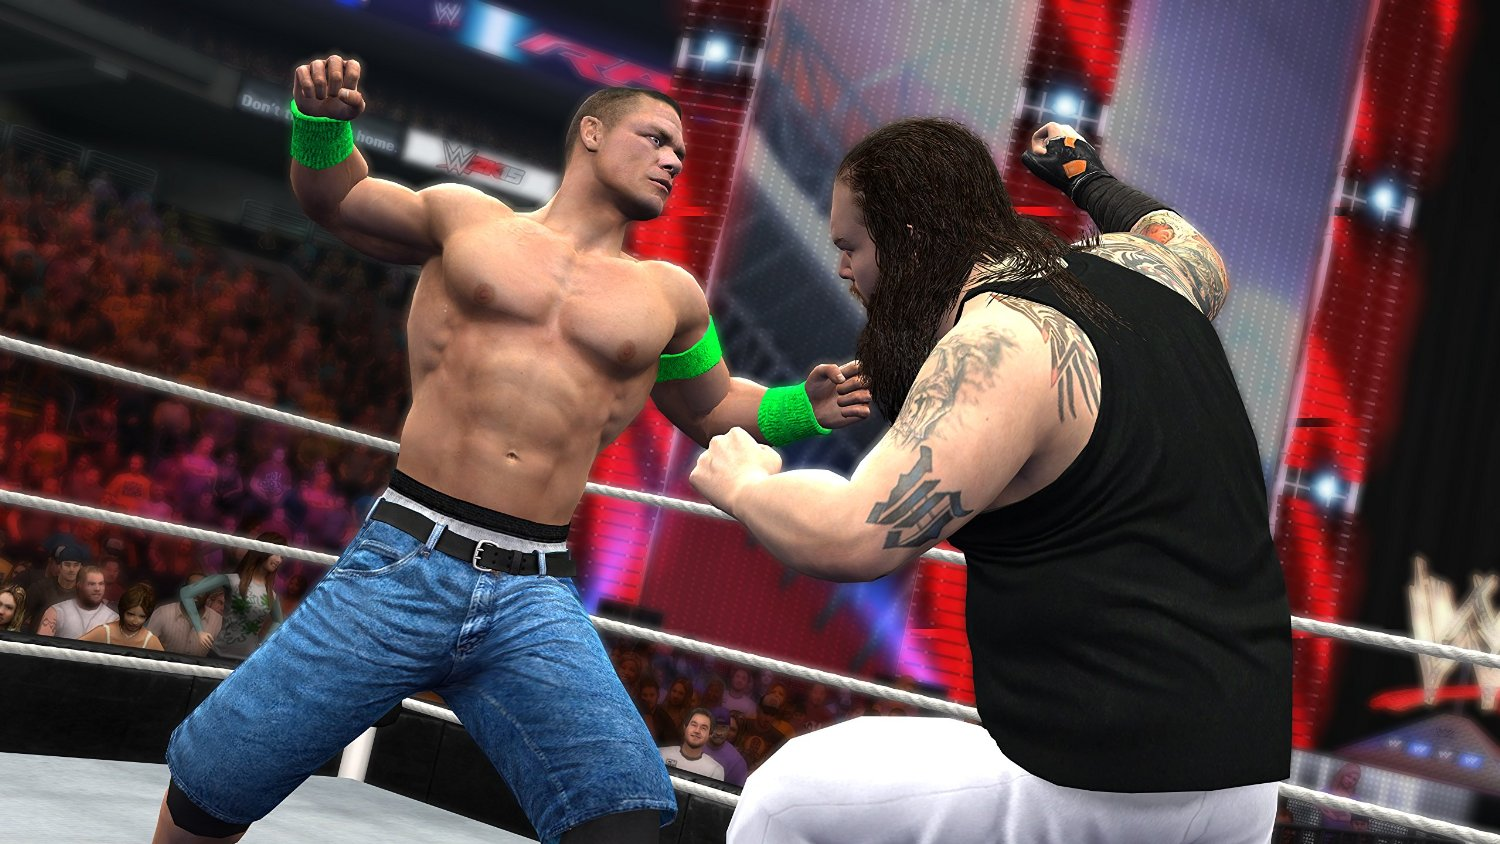 wwe 2k15 sales better than wwe 2k14